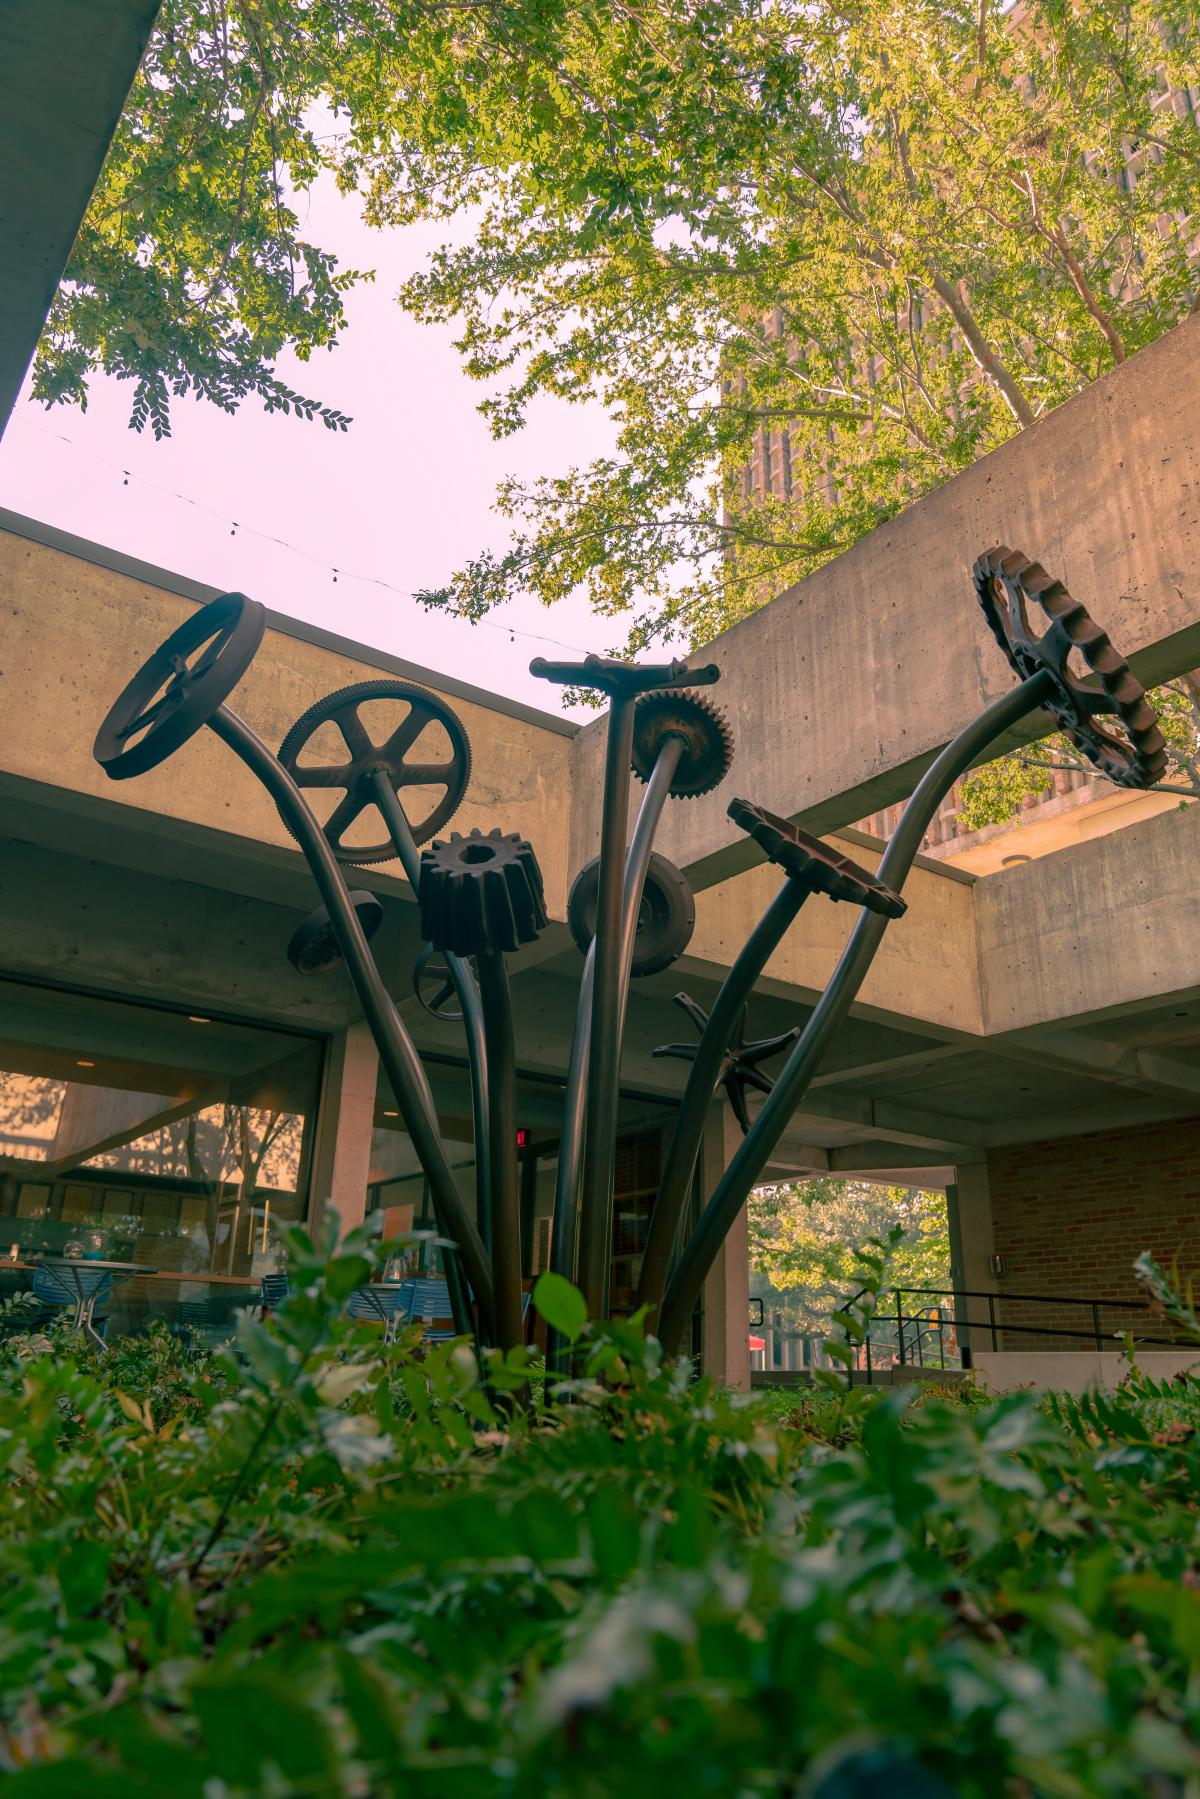 Unique sculpture of gears at the end of a long stem like a flower. This sculpture is a courtyard of Lovett Hall and is surrounded by greenery.